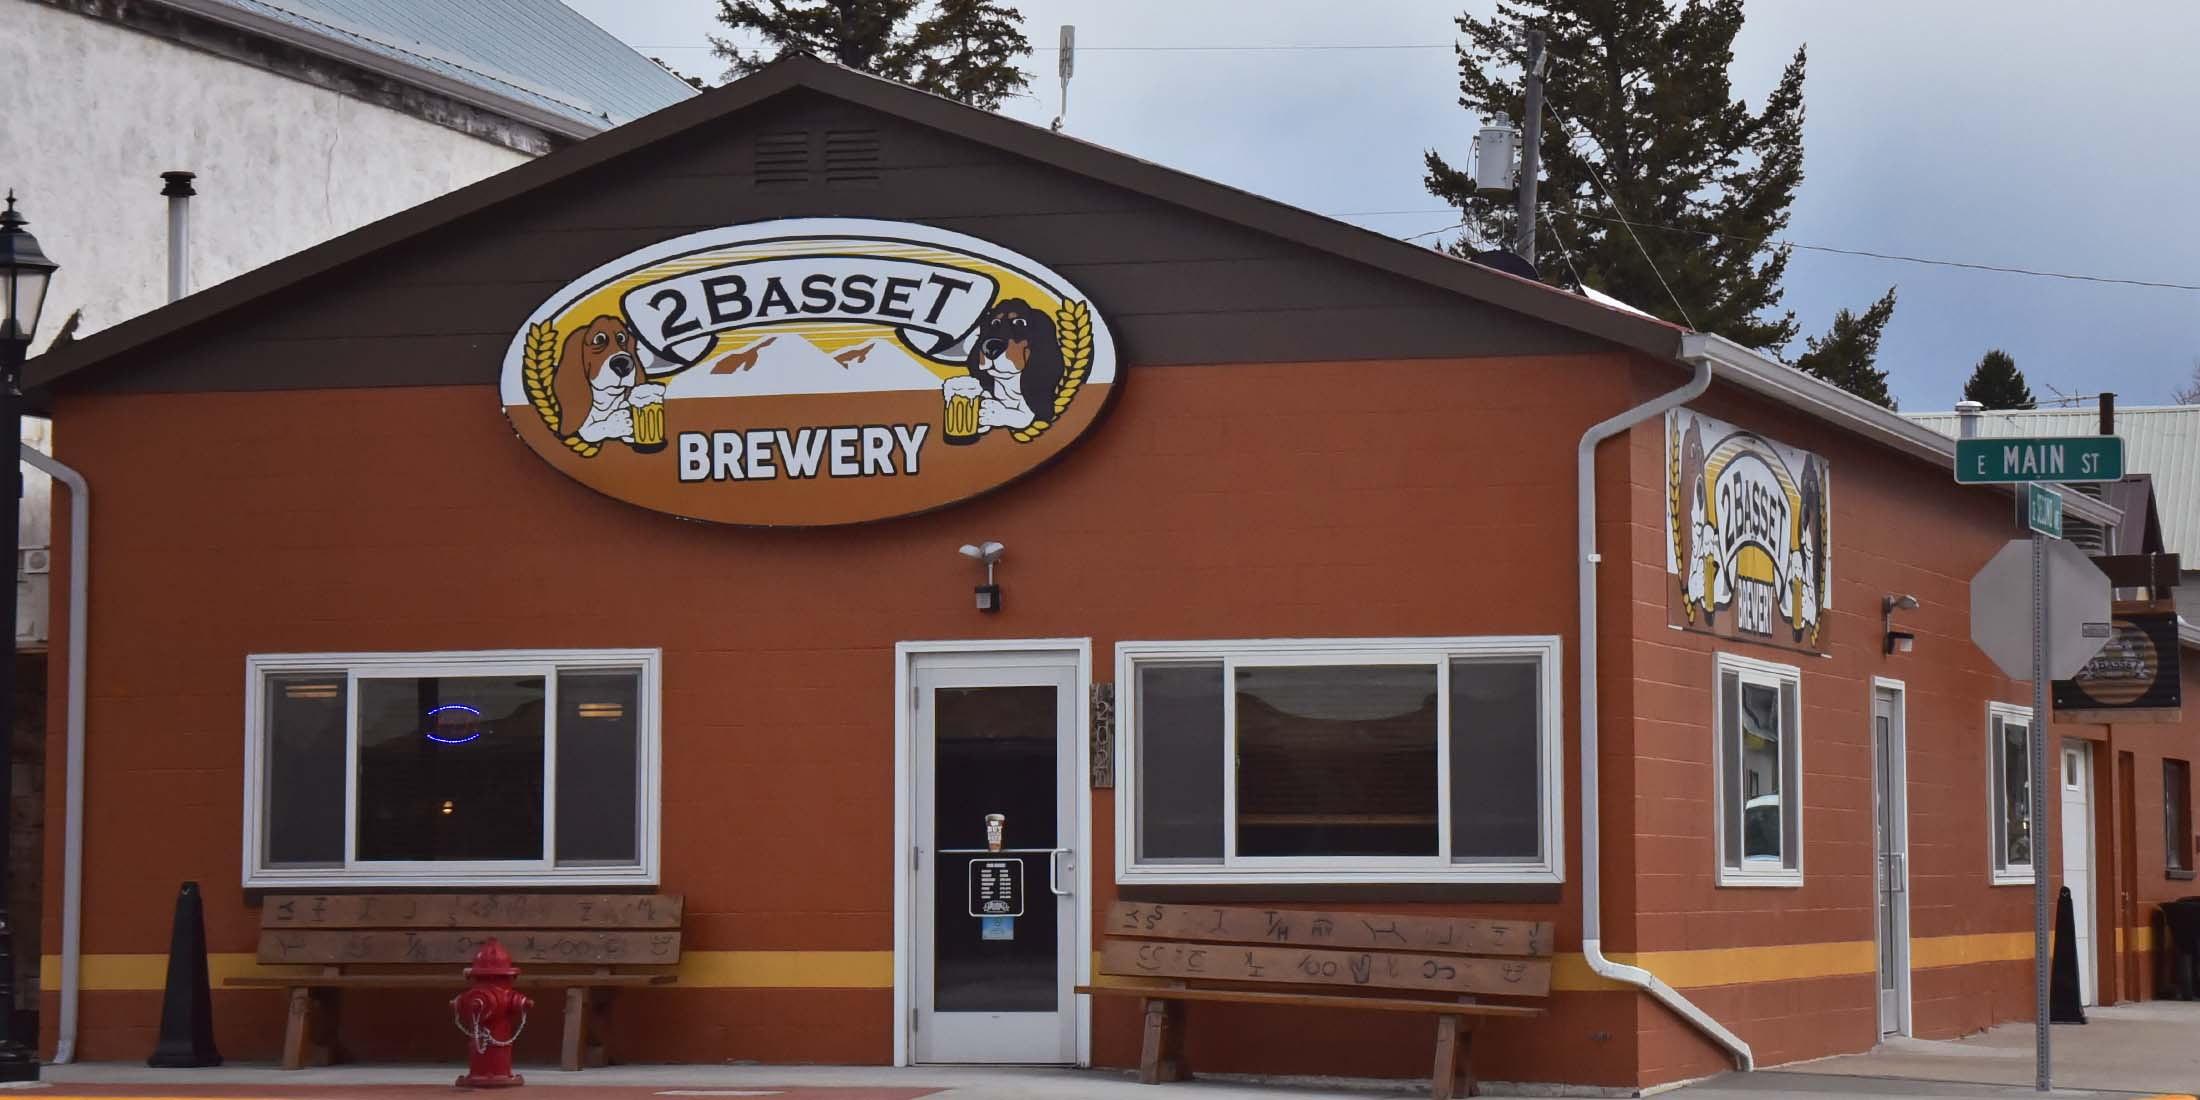 Find all Breweries in the community of White Sulphur Springs, Montana located in Meagher County on Highway 89.